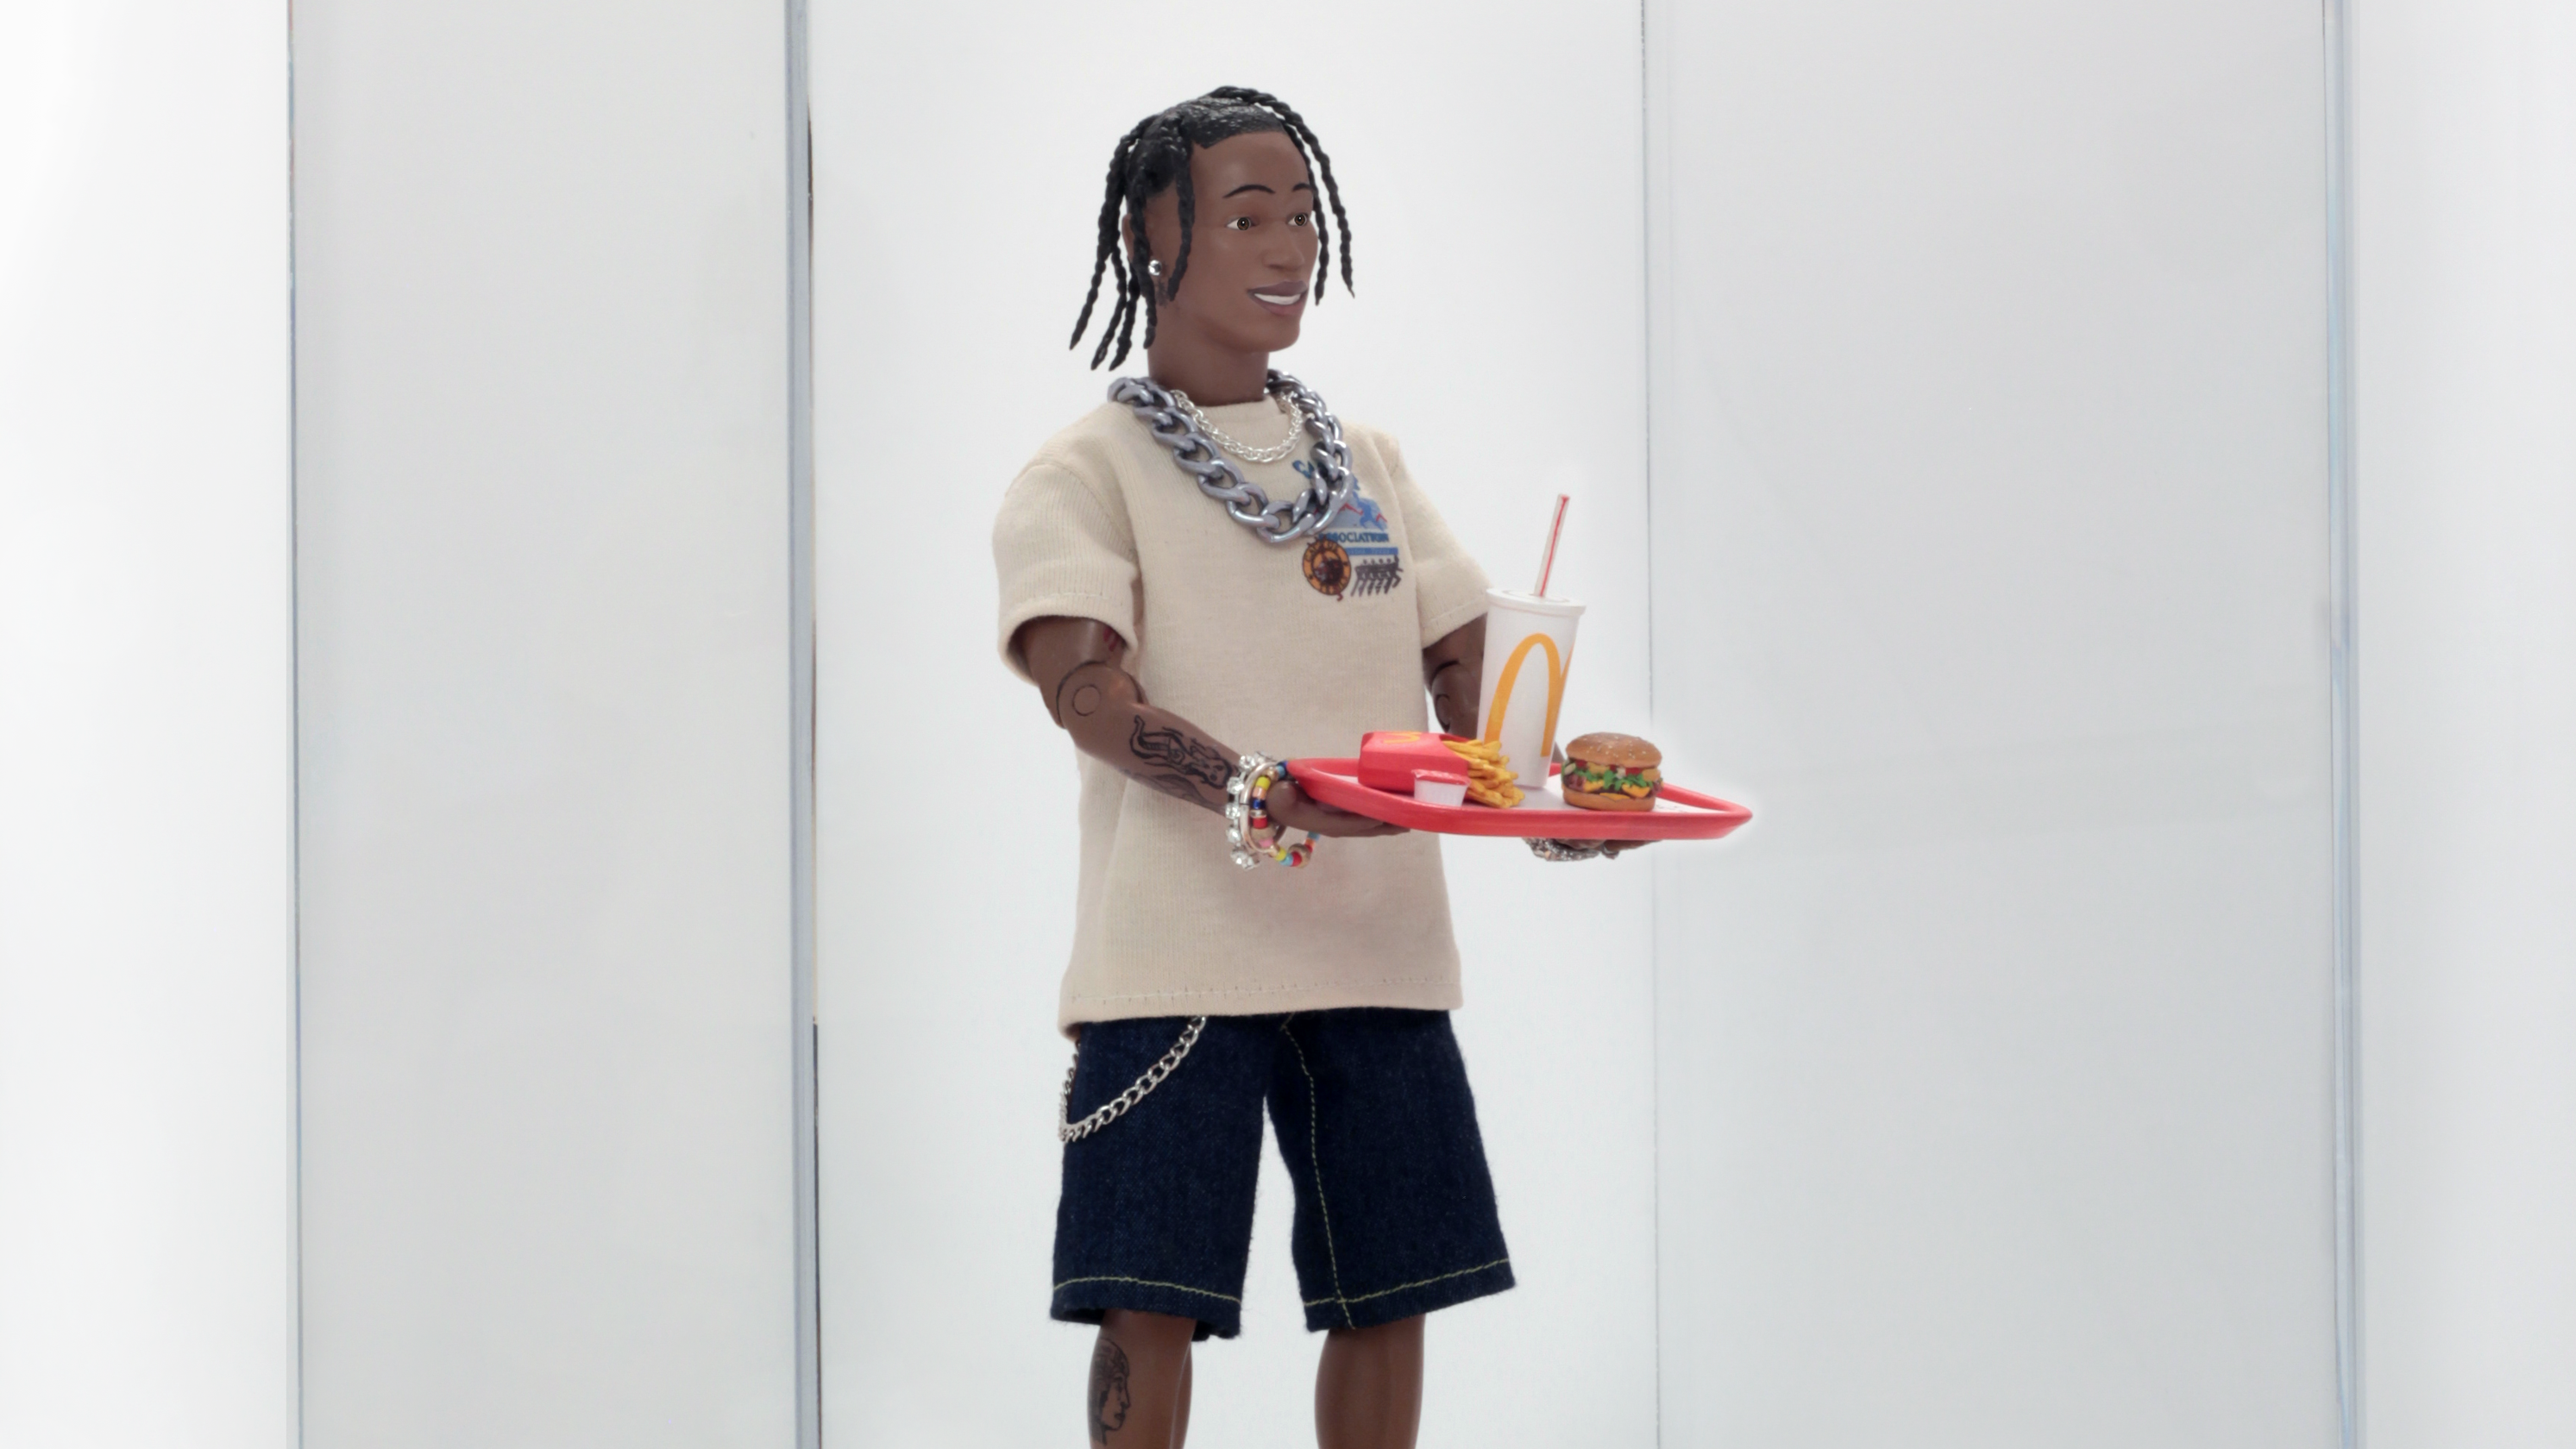 McDonald's and Cactus Jack launch Twitter contest for a chance to win Travis Scott action figures